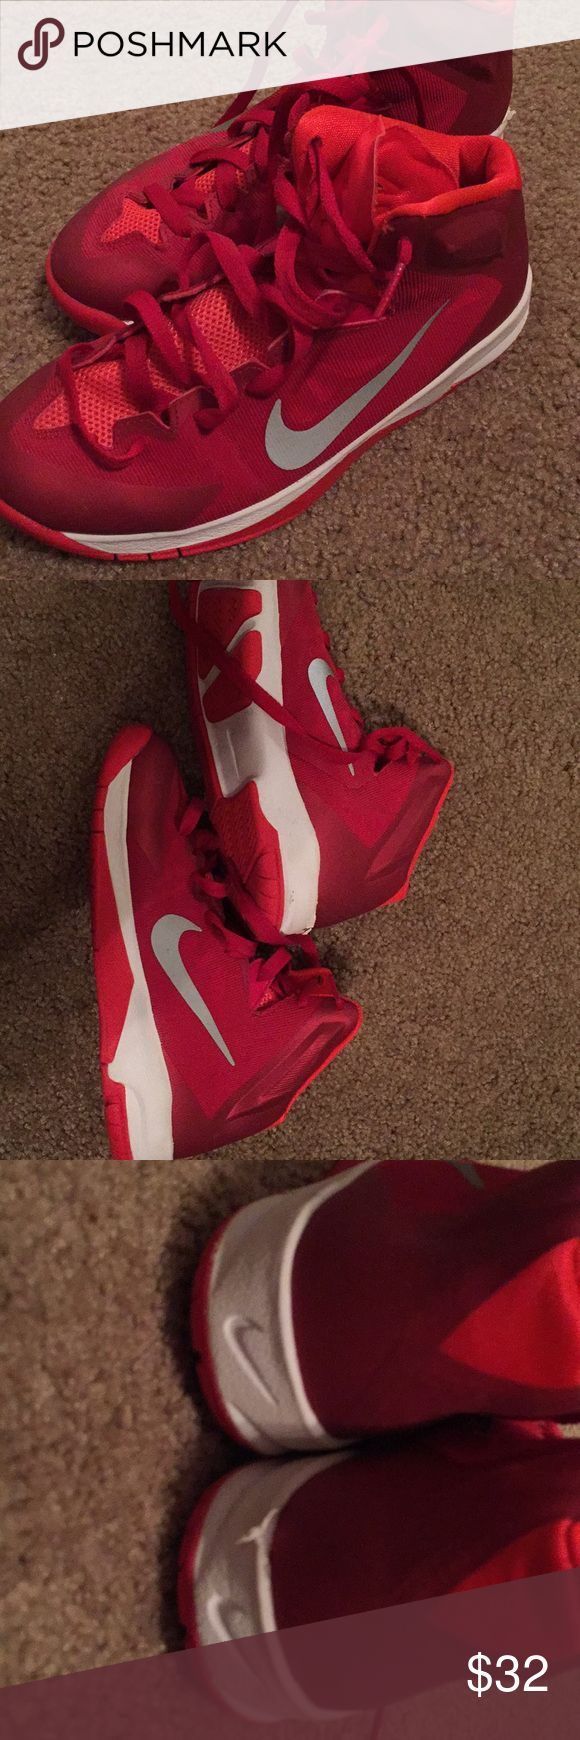 Boys hightop Nike tennis shoes, size 4 1/2 Excellent condition boys red and white Nike high top tennis shoes, size 4 1/2, comes from a smoke free home. Nike Shoes Sneakers